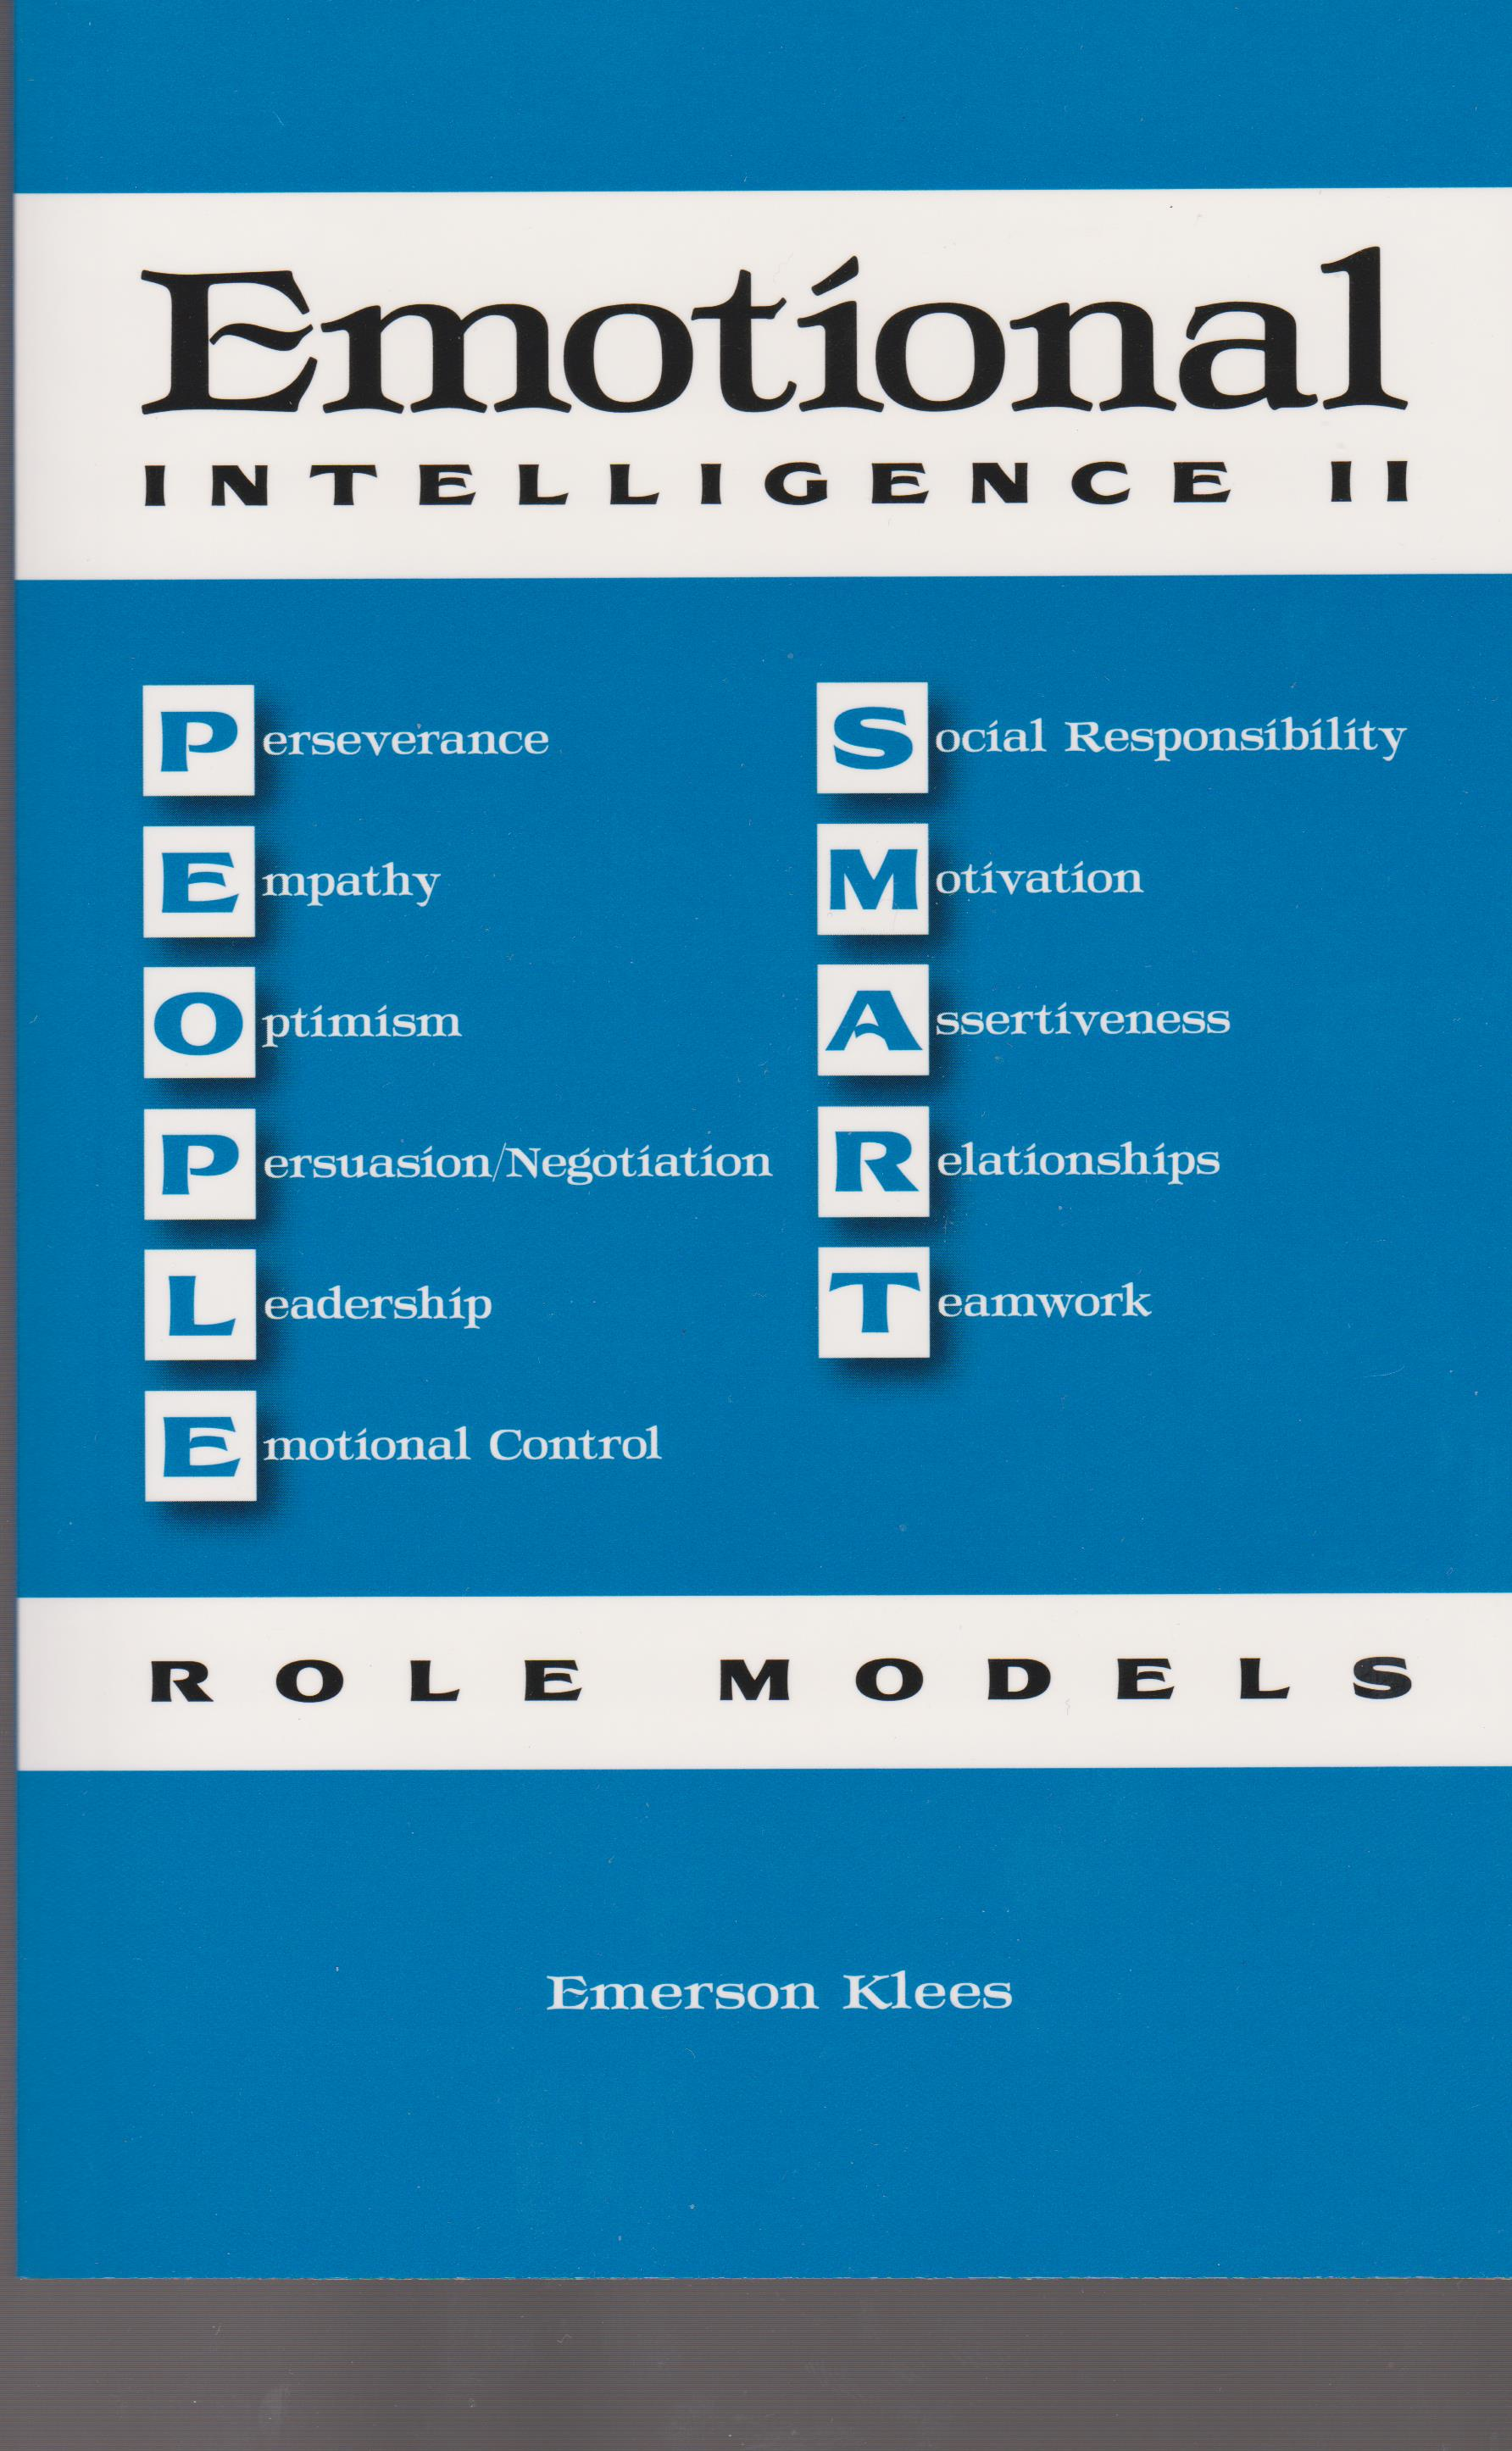 Emotional Intelligence II: People Smart Role Models